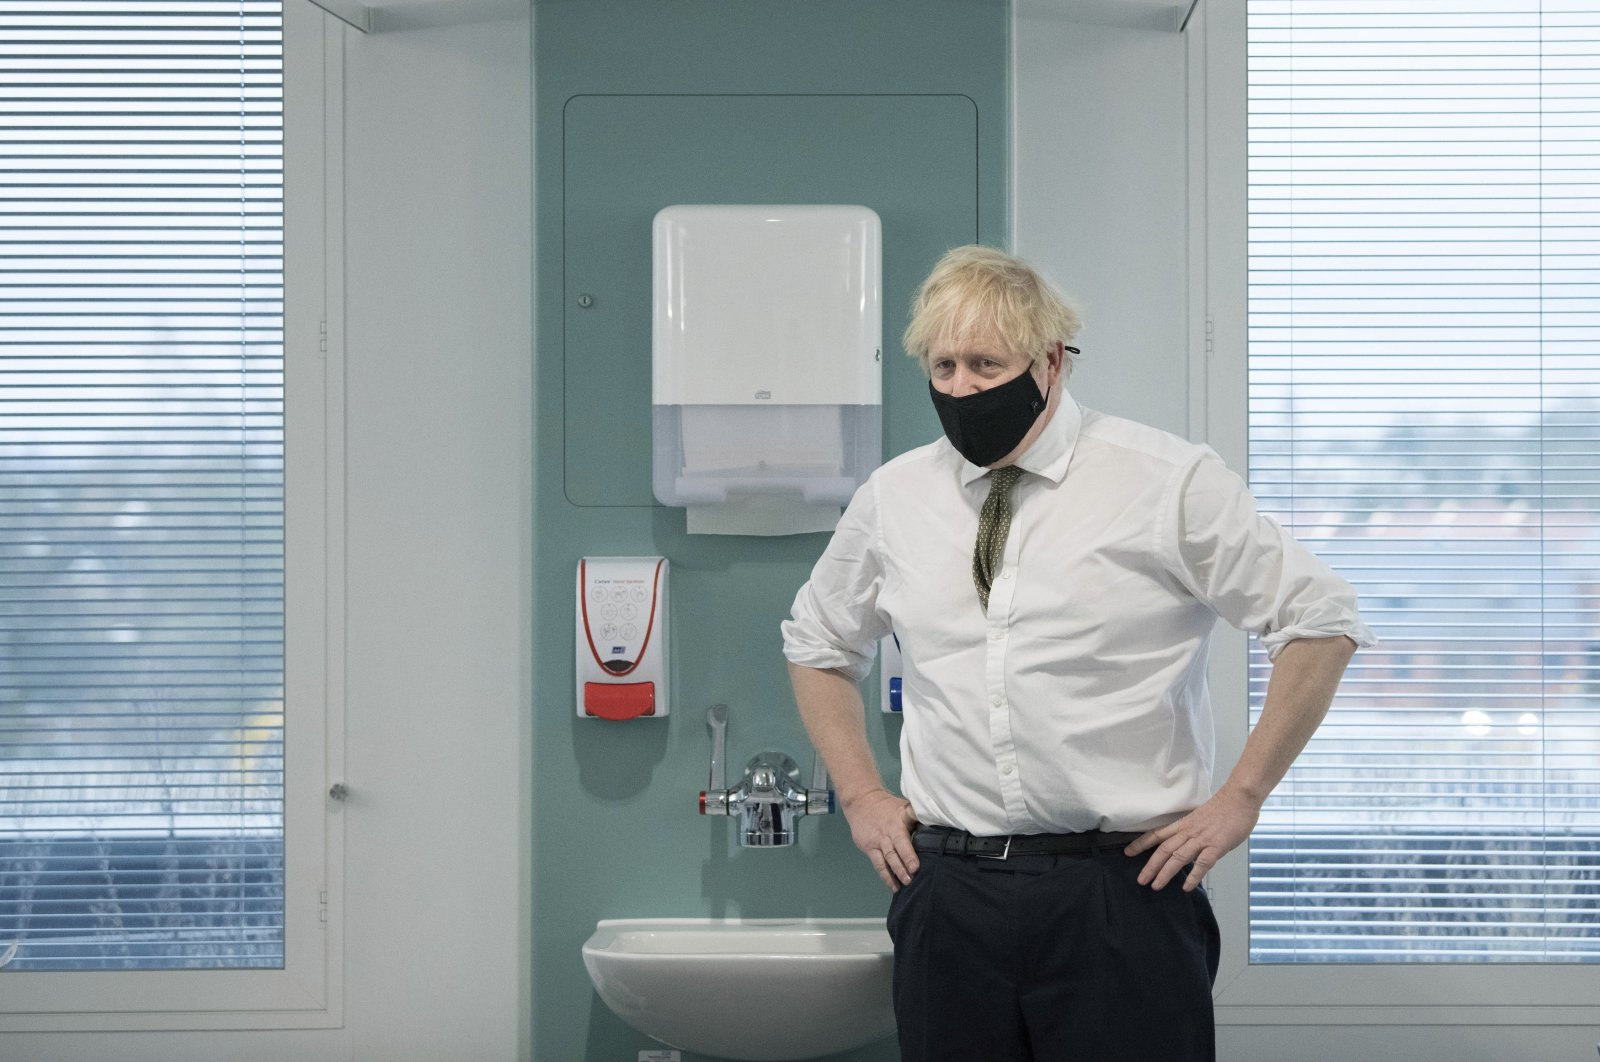 Britain's Prime Minister Boris Johnson during a visit to view the vaccination program at the Chase Farm Hospital, part of the Royal Free London NHS Foundation Trust, in north London, Jan. 4, 2021. (AP Photo)